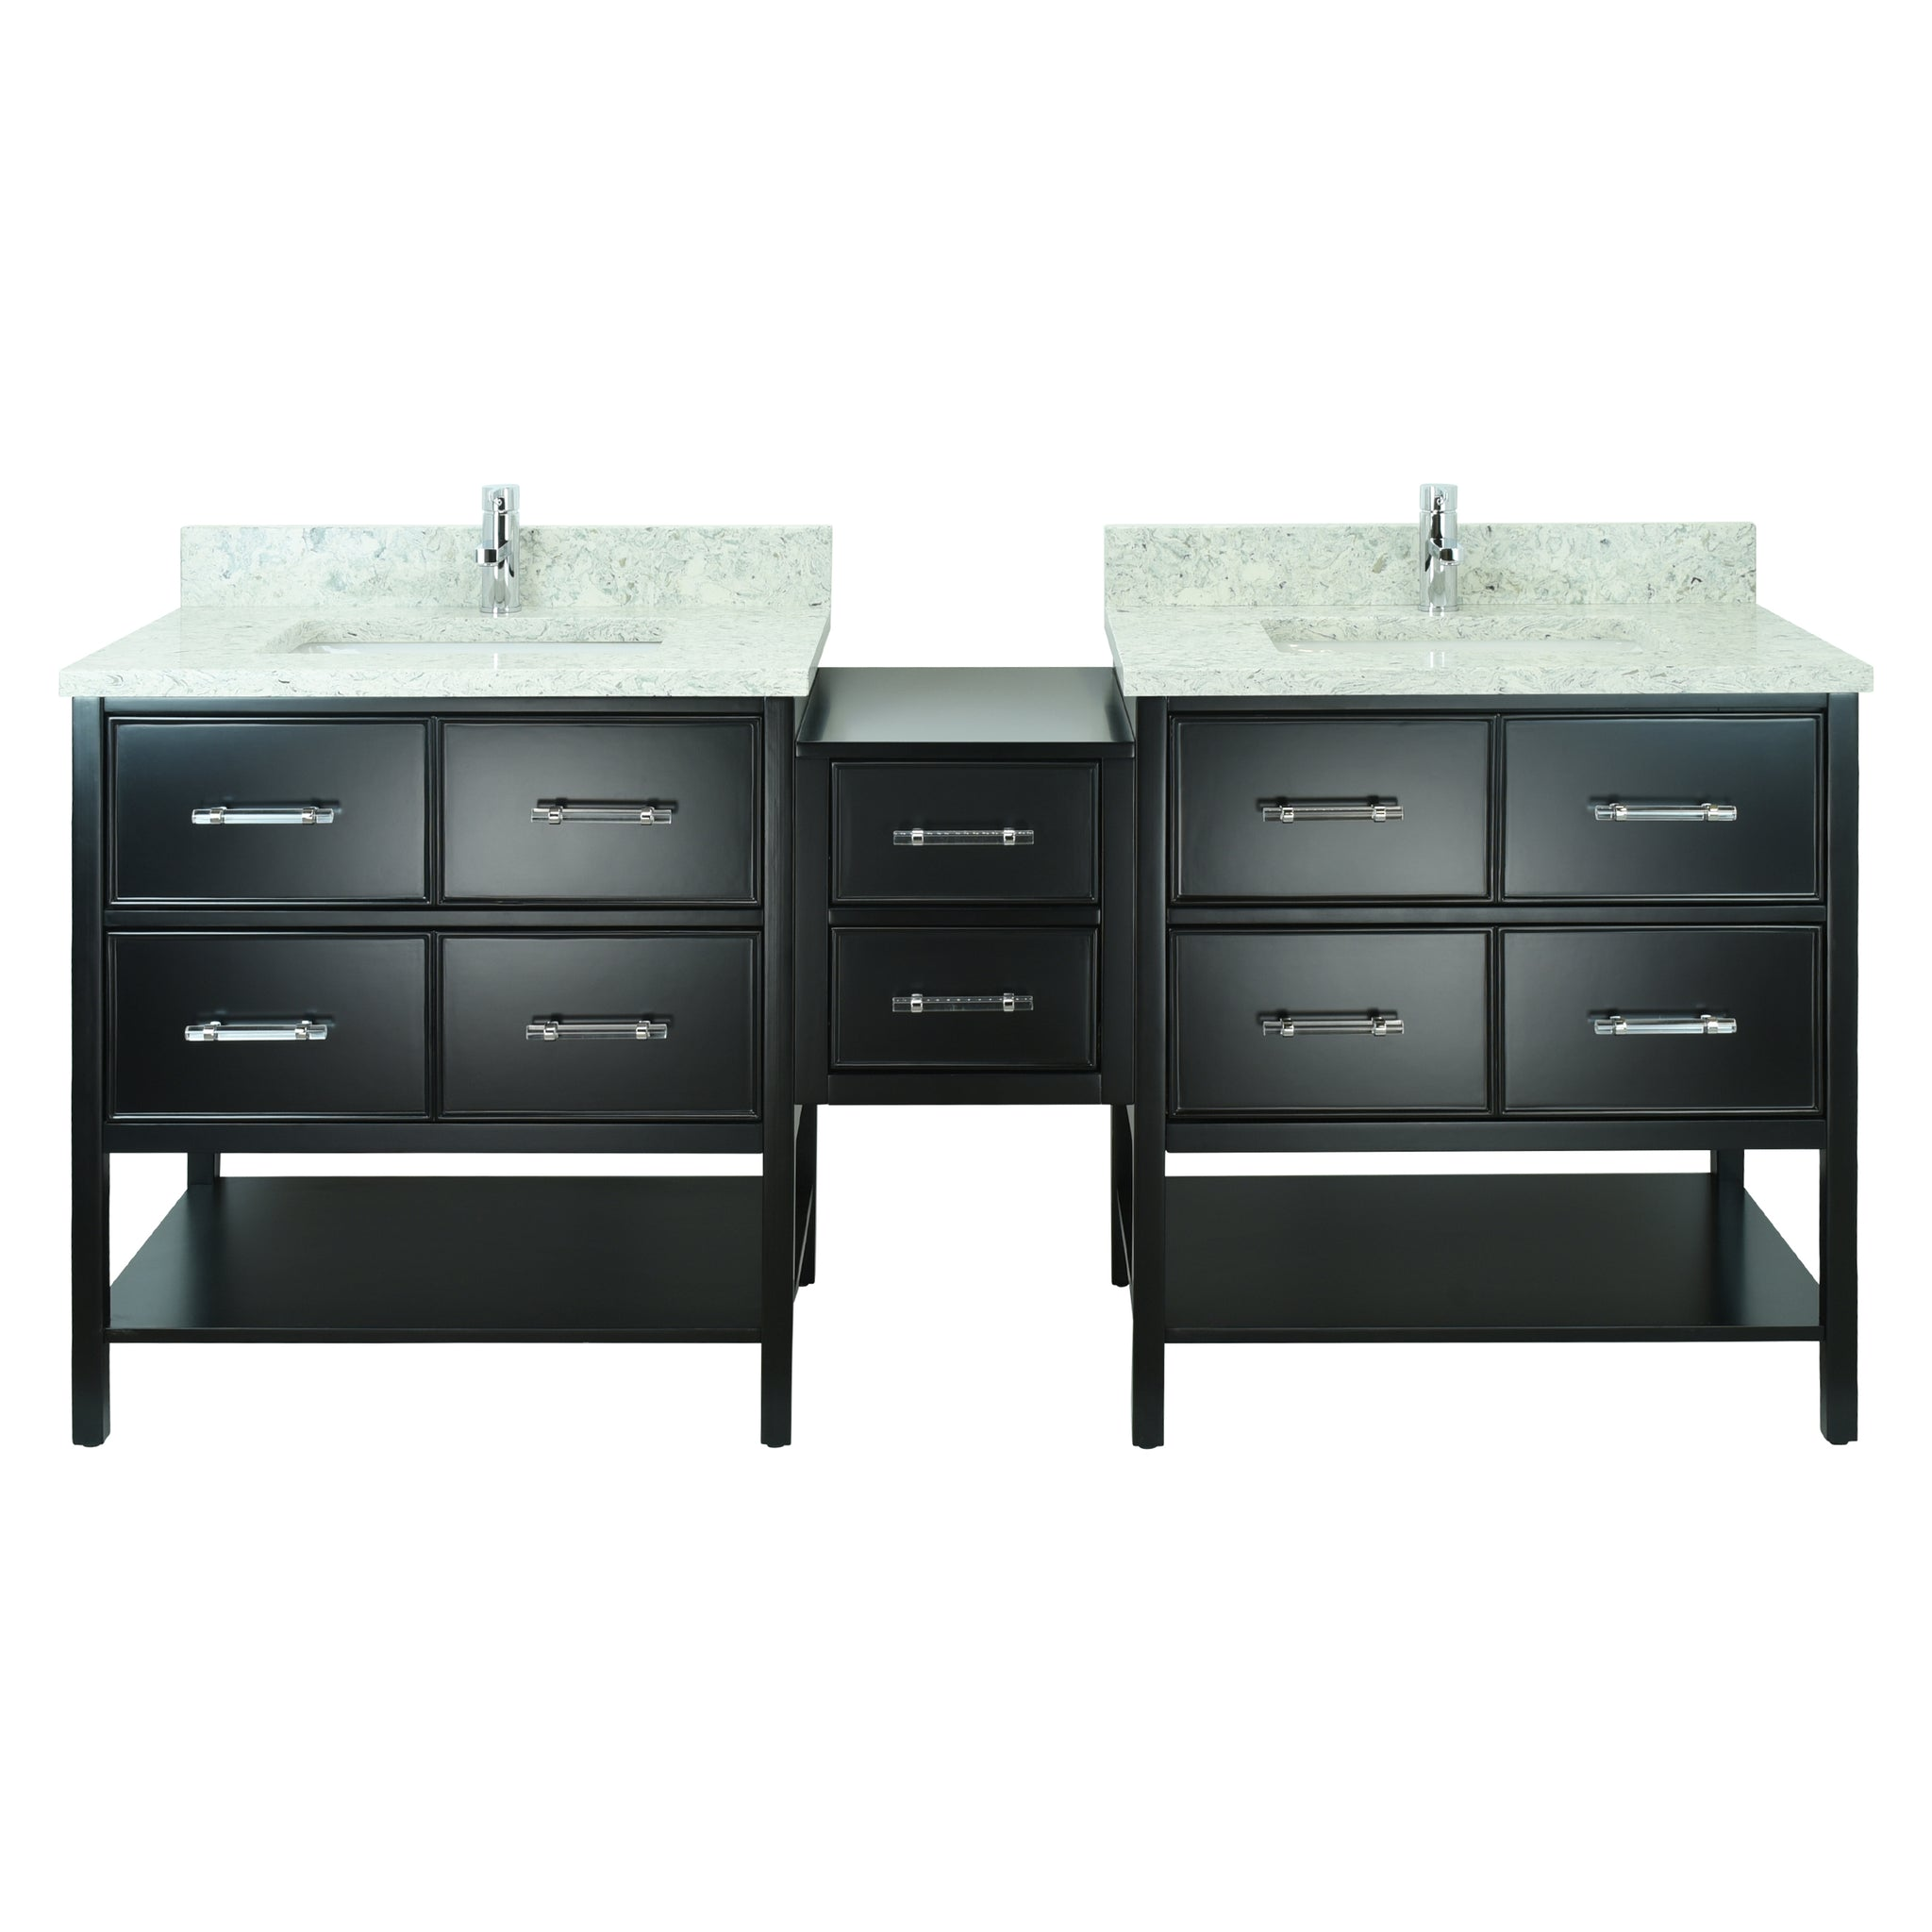 "86"" Black Gemma Vanity with Topaz Quartz"